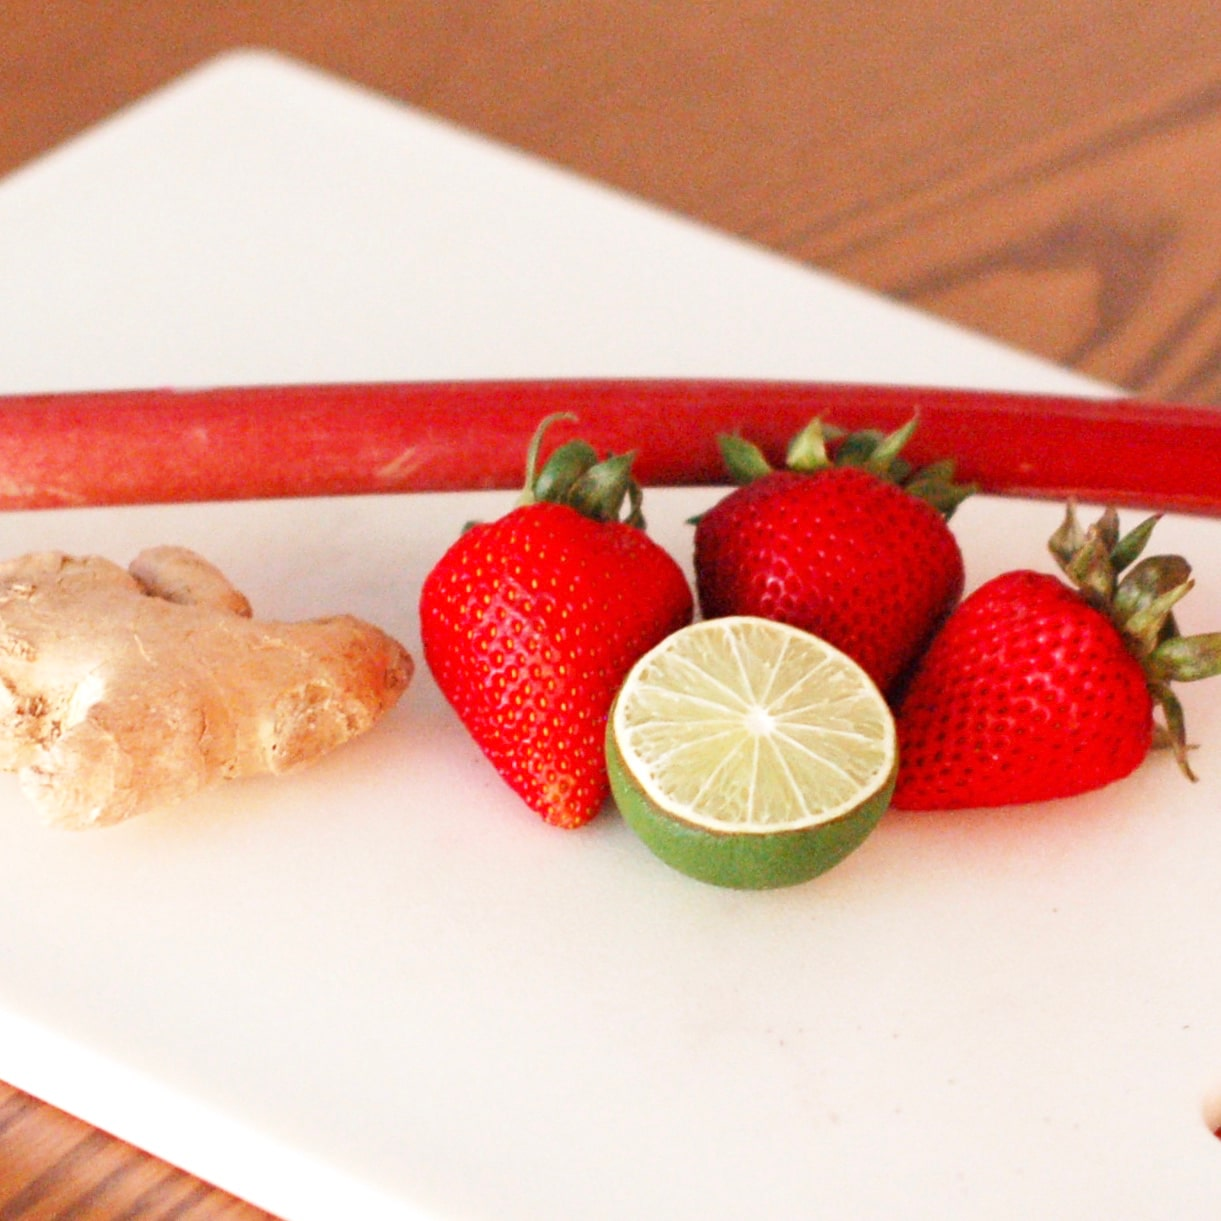 ingredients used to make a strawberry rhubarb mimosa: strawberries, rhubarb, ginger, and lime juice